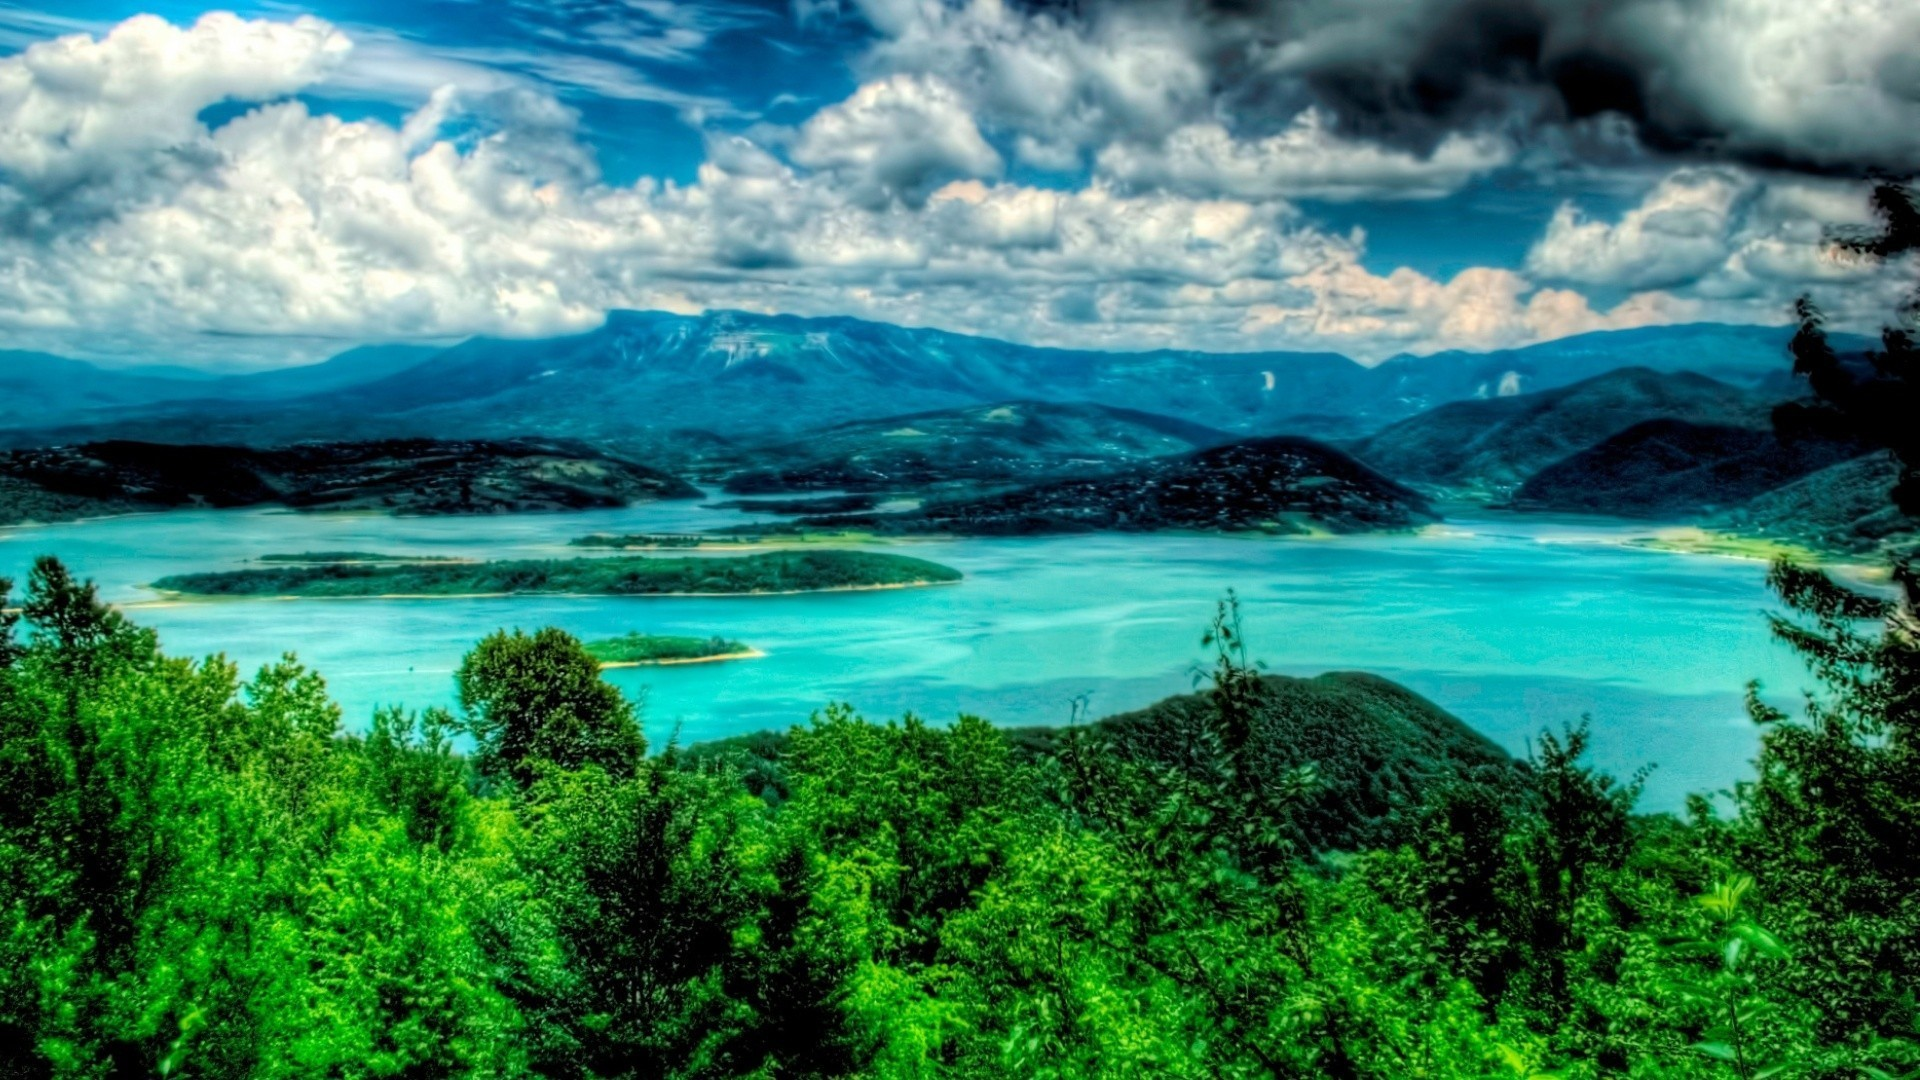 Res: 1920x1080, Georgia hdr photography landscapes nature wallpaper. Natur Seife HD  wallpaper